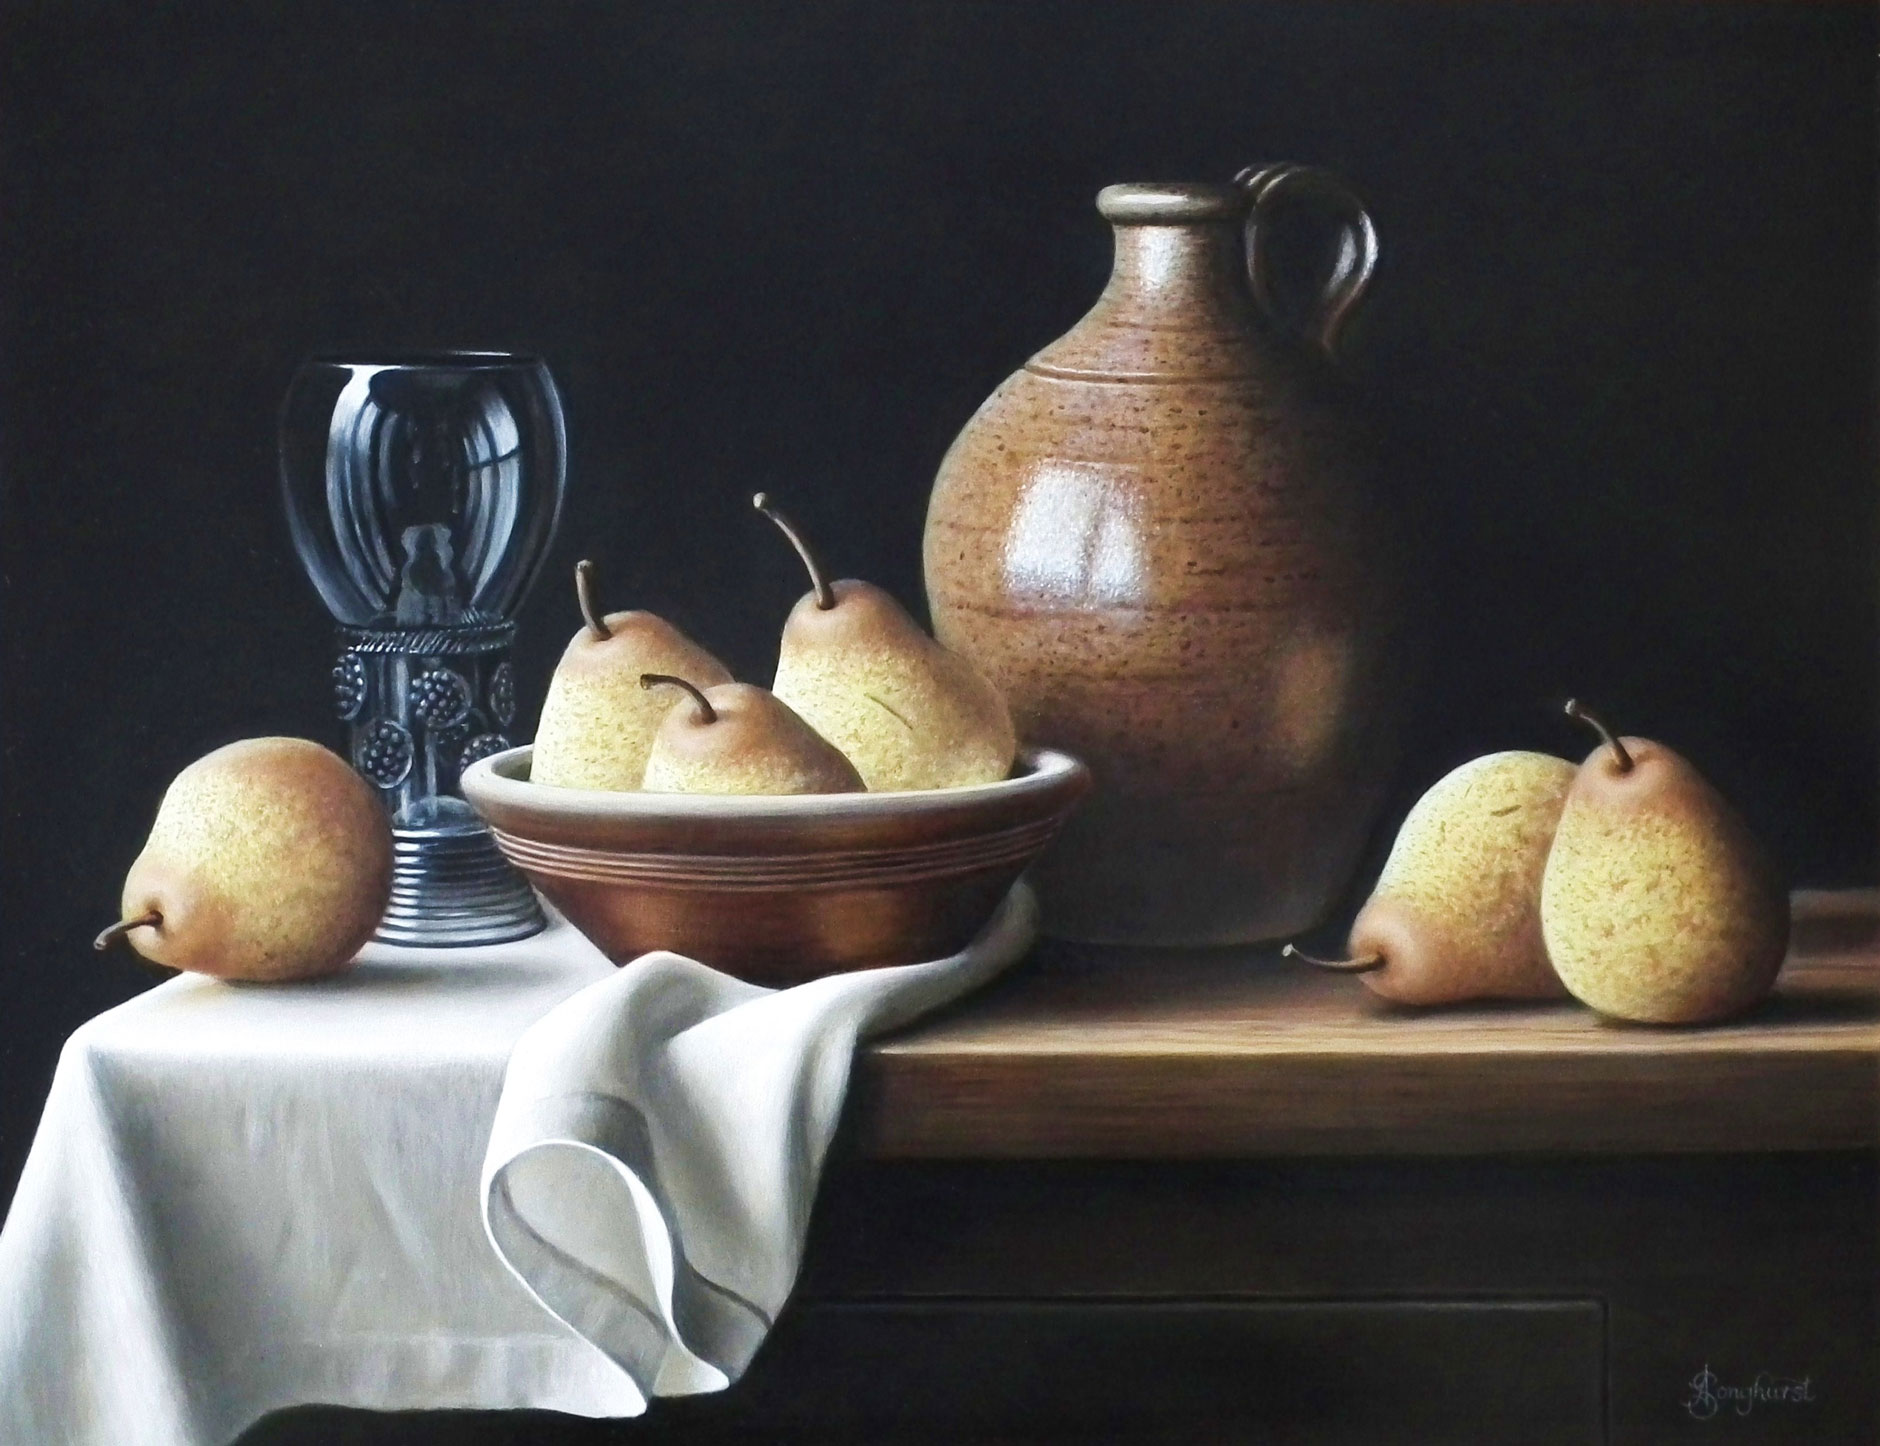 Cider Flagon with Pears by Anne Songhurst. Stoneware Vessels from John Leach Pottery